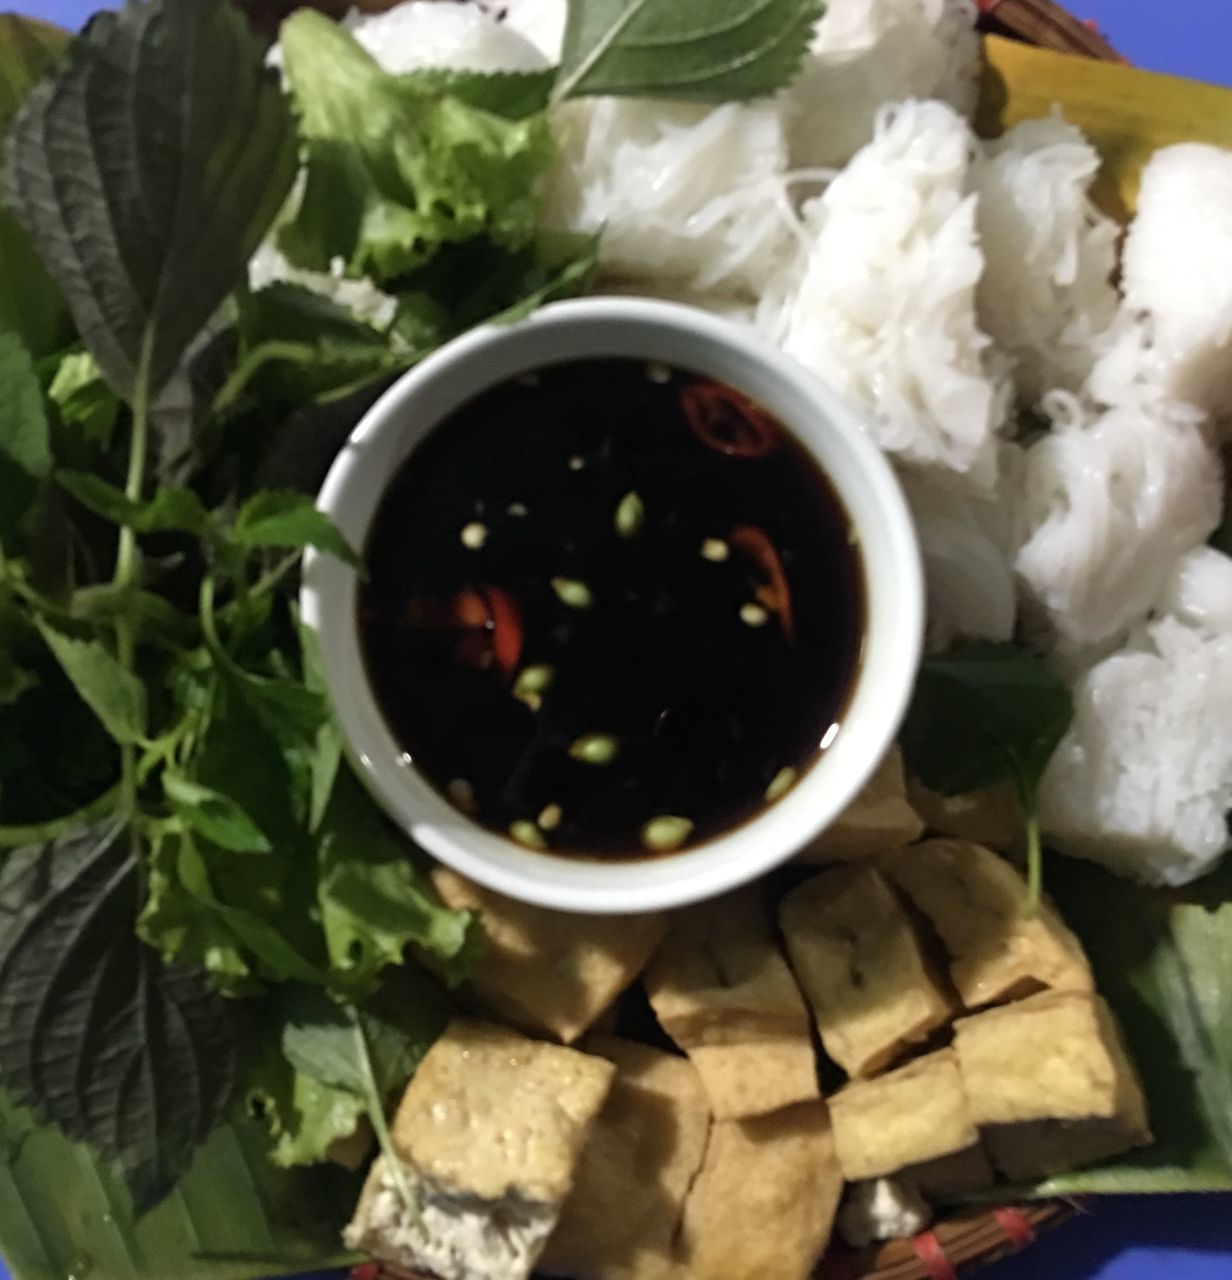 food and drink, food, freshness, bowl, directly above, healthy eating, ready-to-eat, high angle view, wellbeing, close-up, no people, indoors, leaf, plant part, still life, asian food, vegetable, serving size, nature, sauce, japanese food